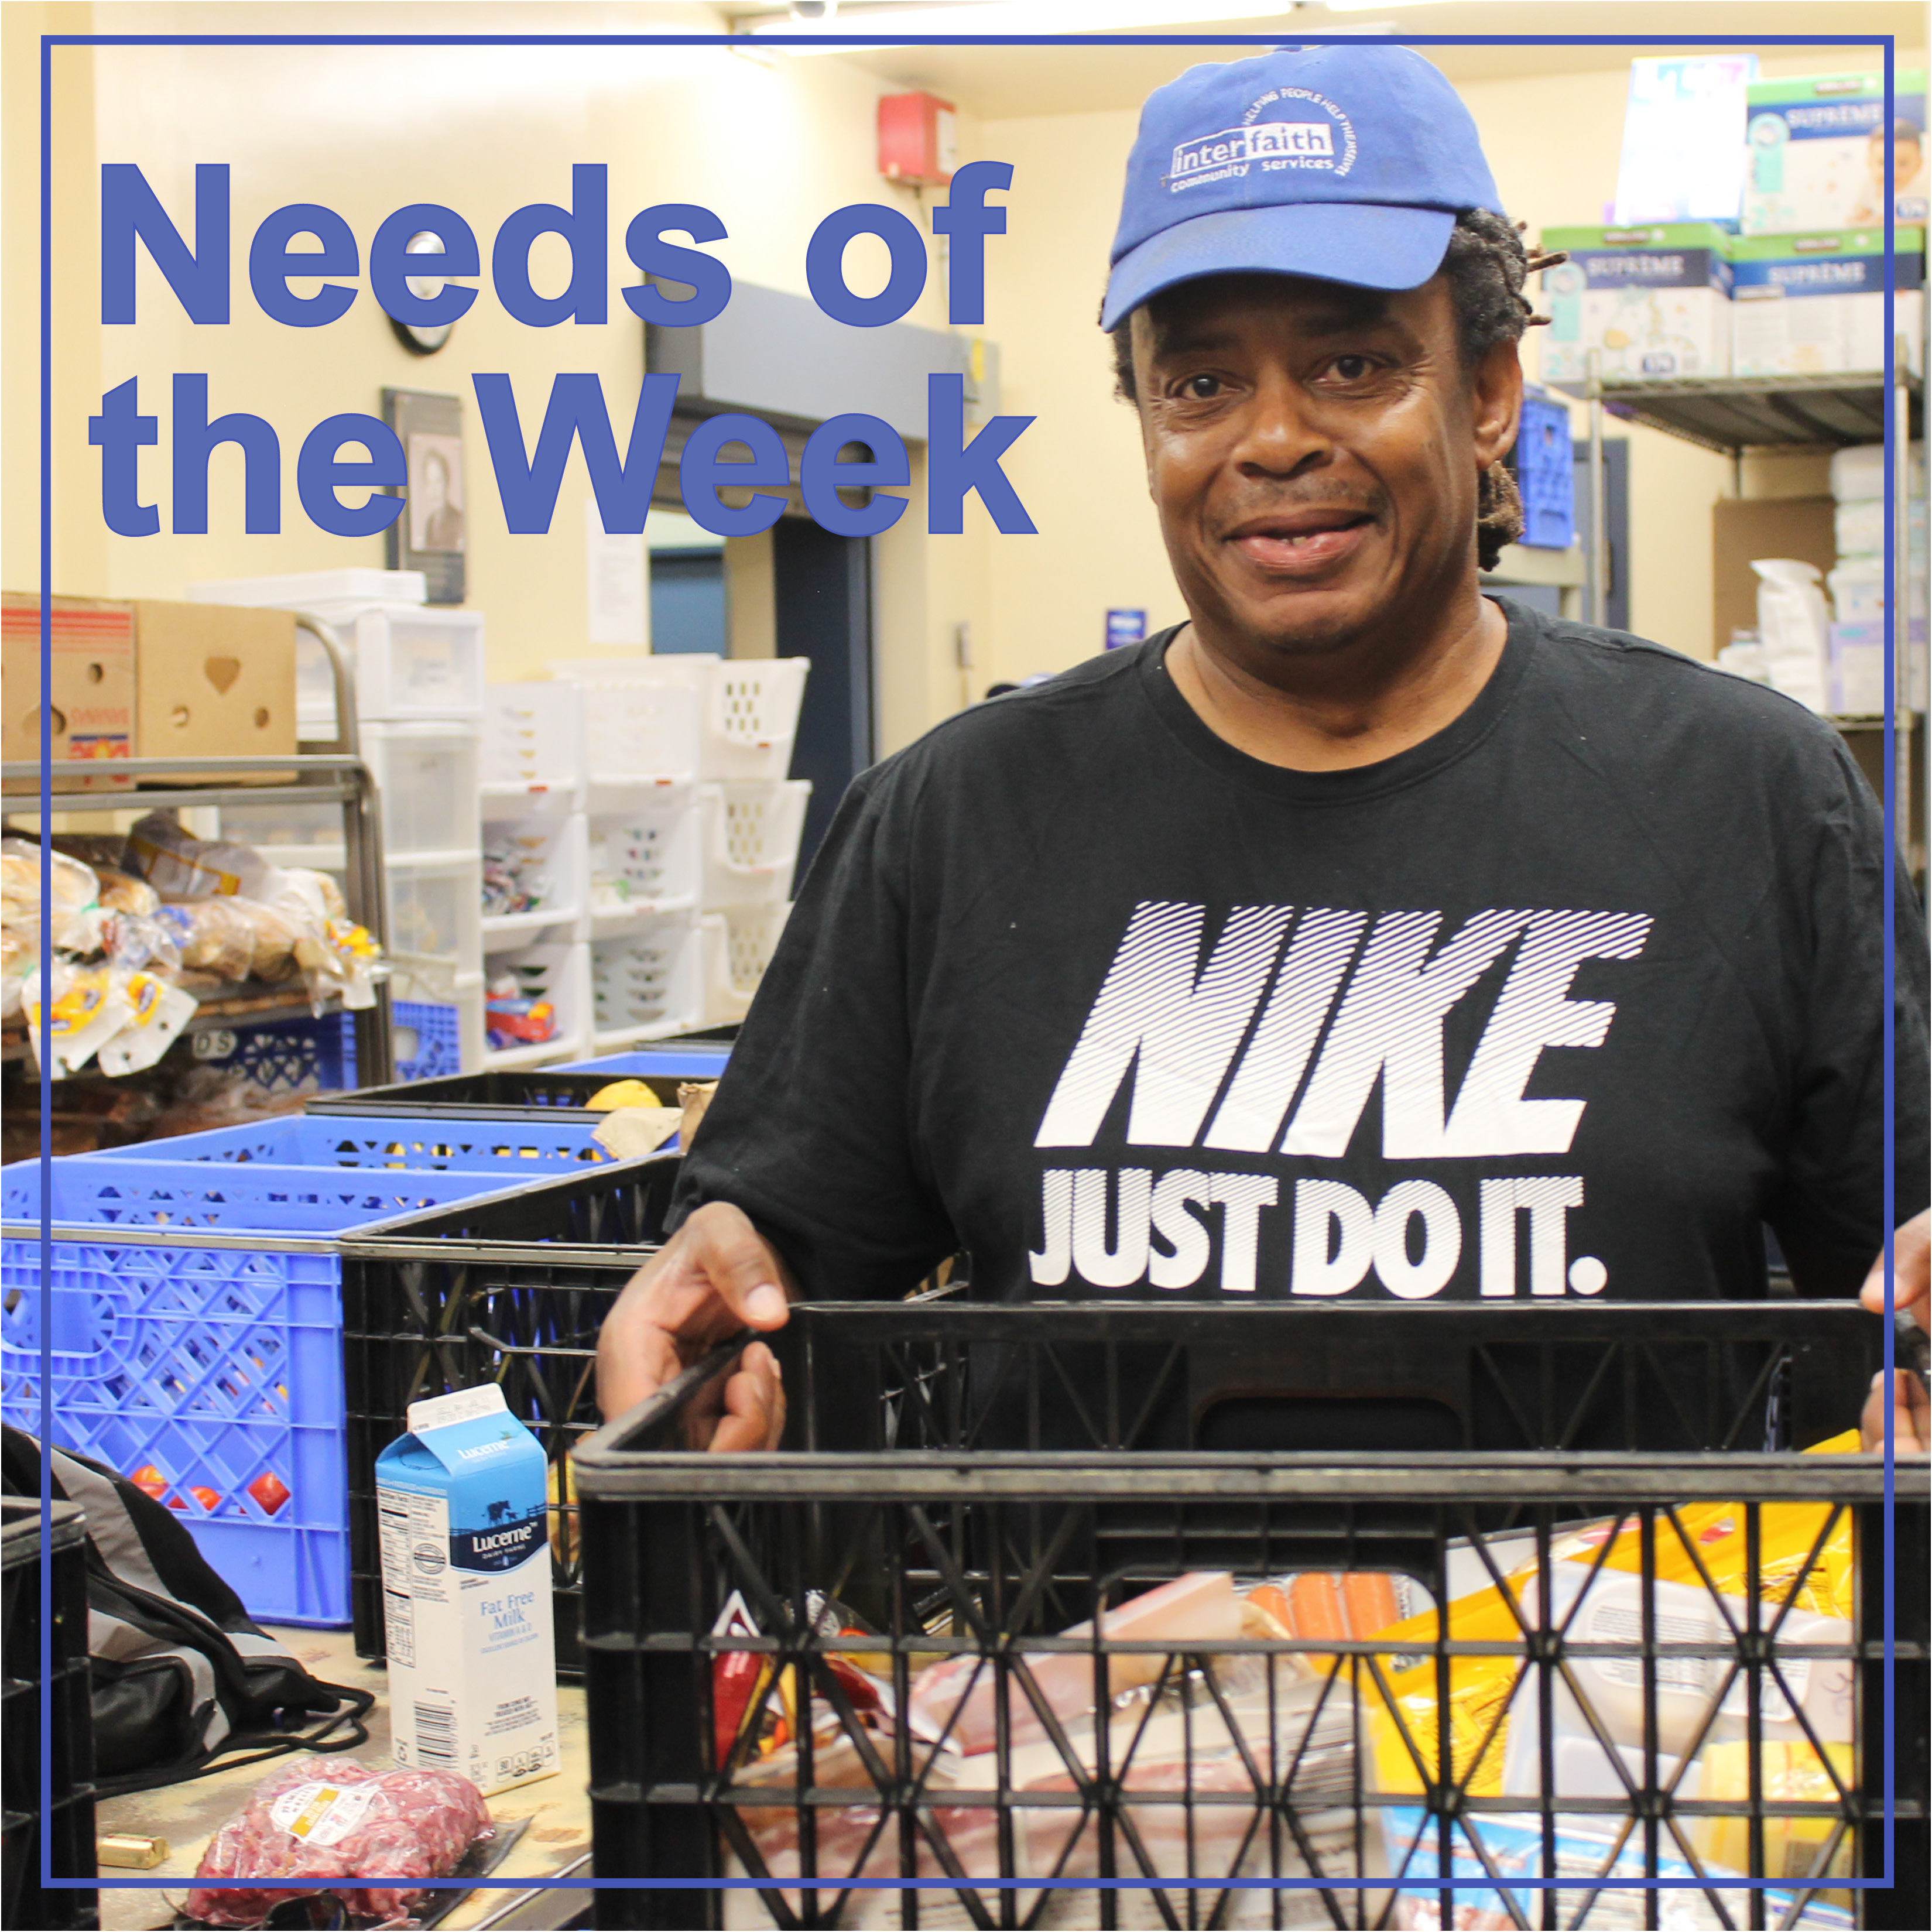 needs of the week man holding basket of food